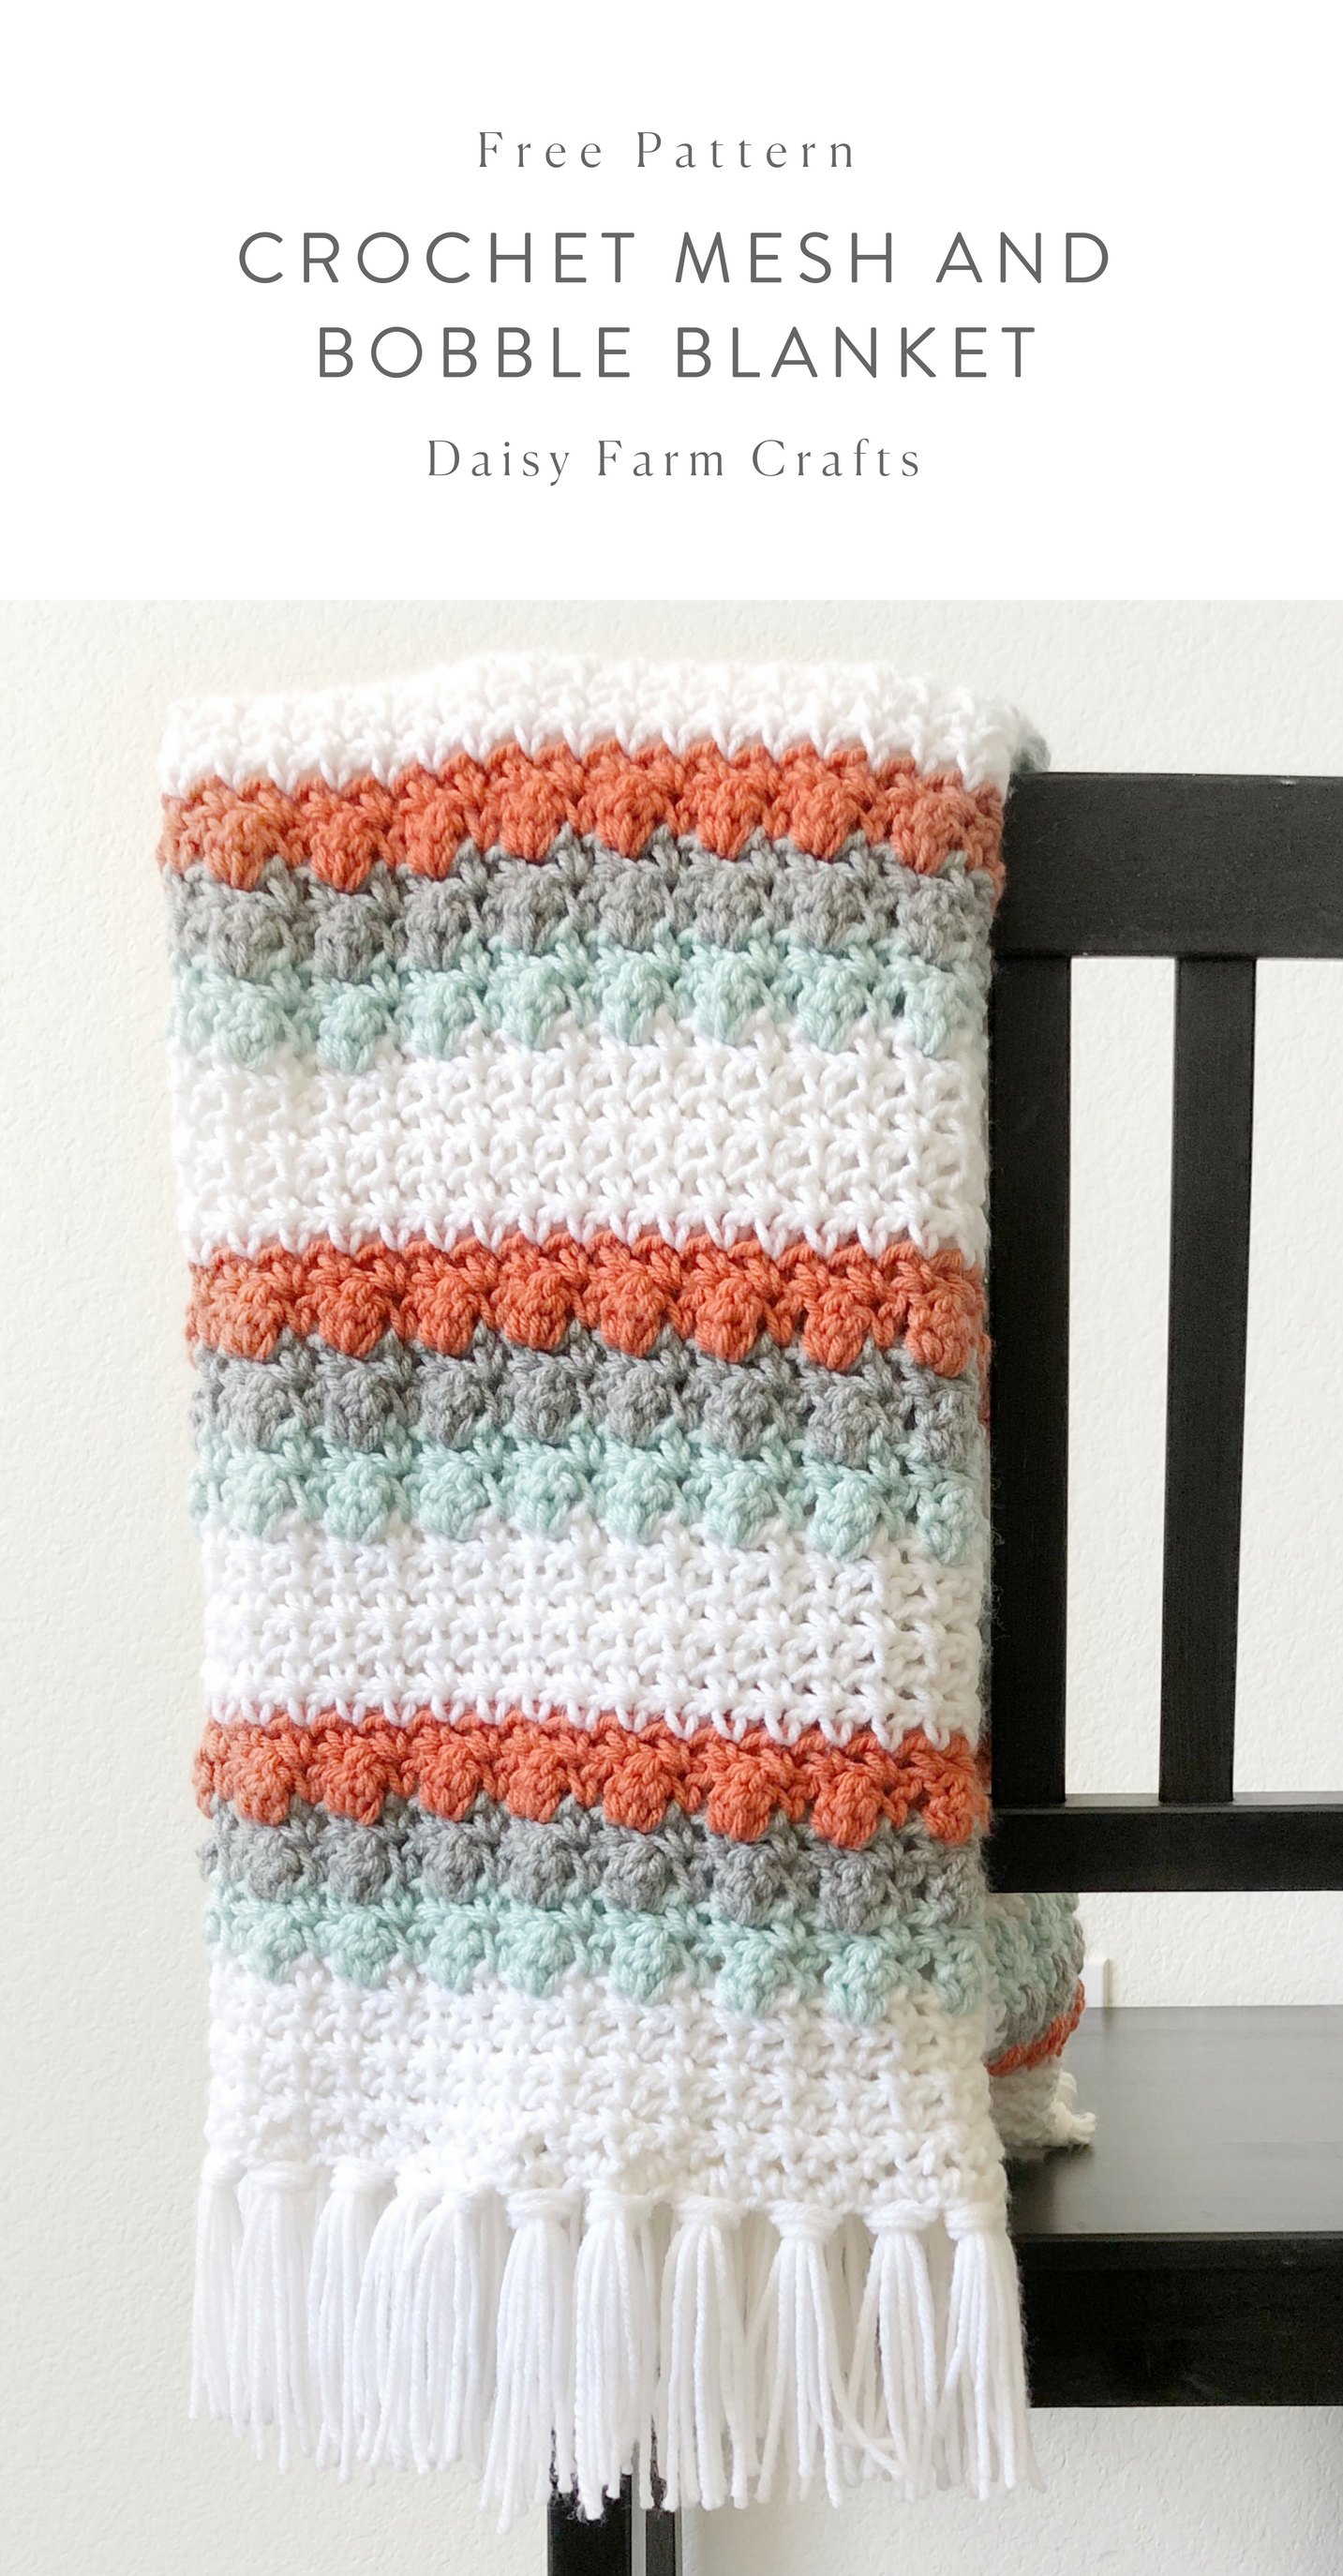 Free Pattern - Crochet Mesh and Bobble Blanket #crochet | tendidos ...